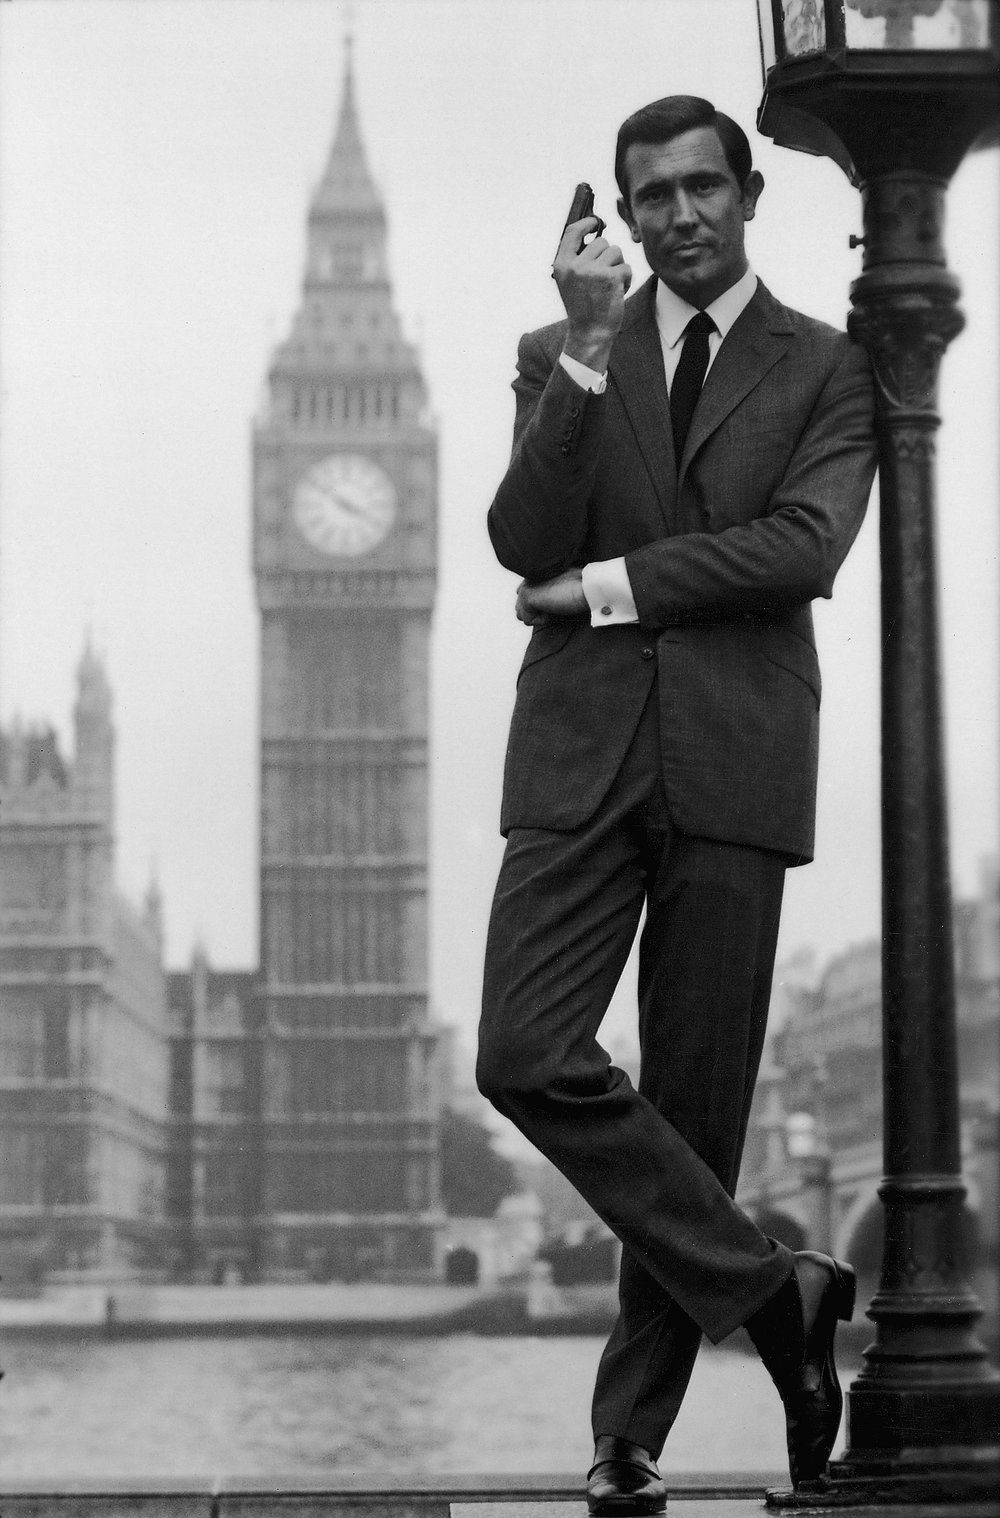 Whatever you think of his acting, Lazenby sure looked the part.